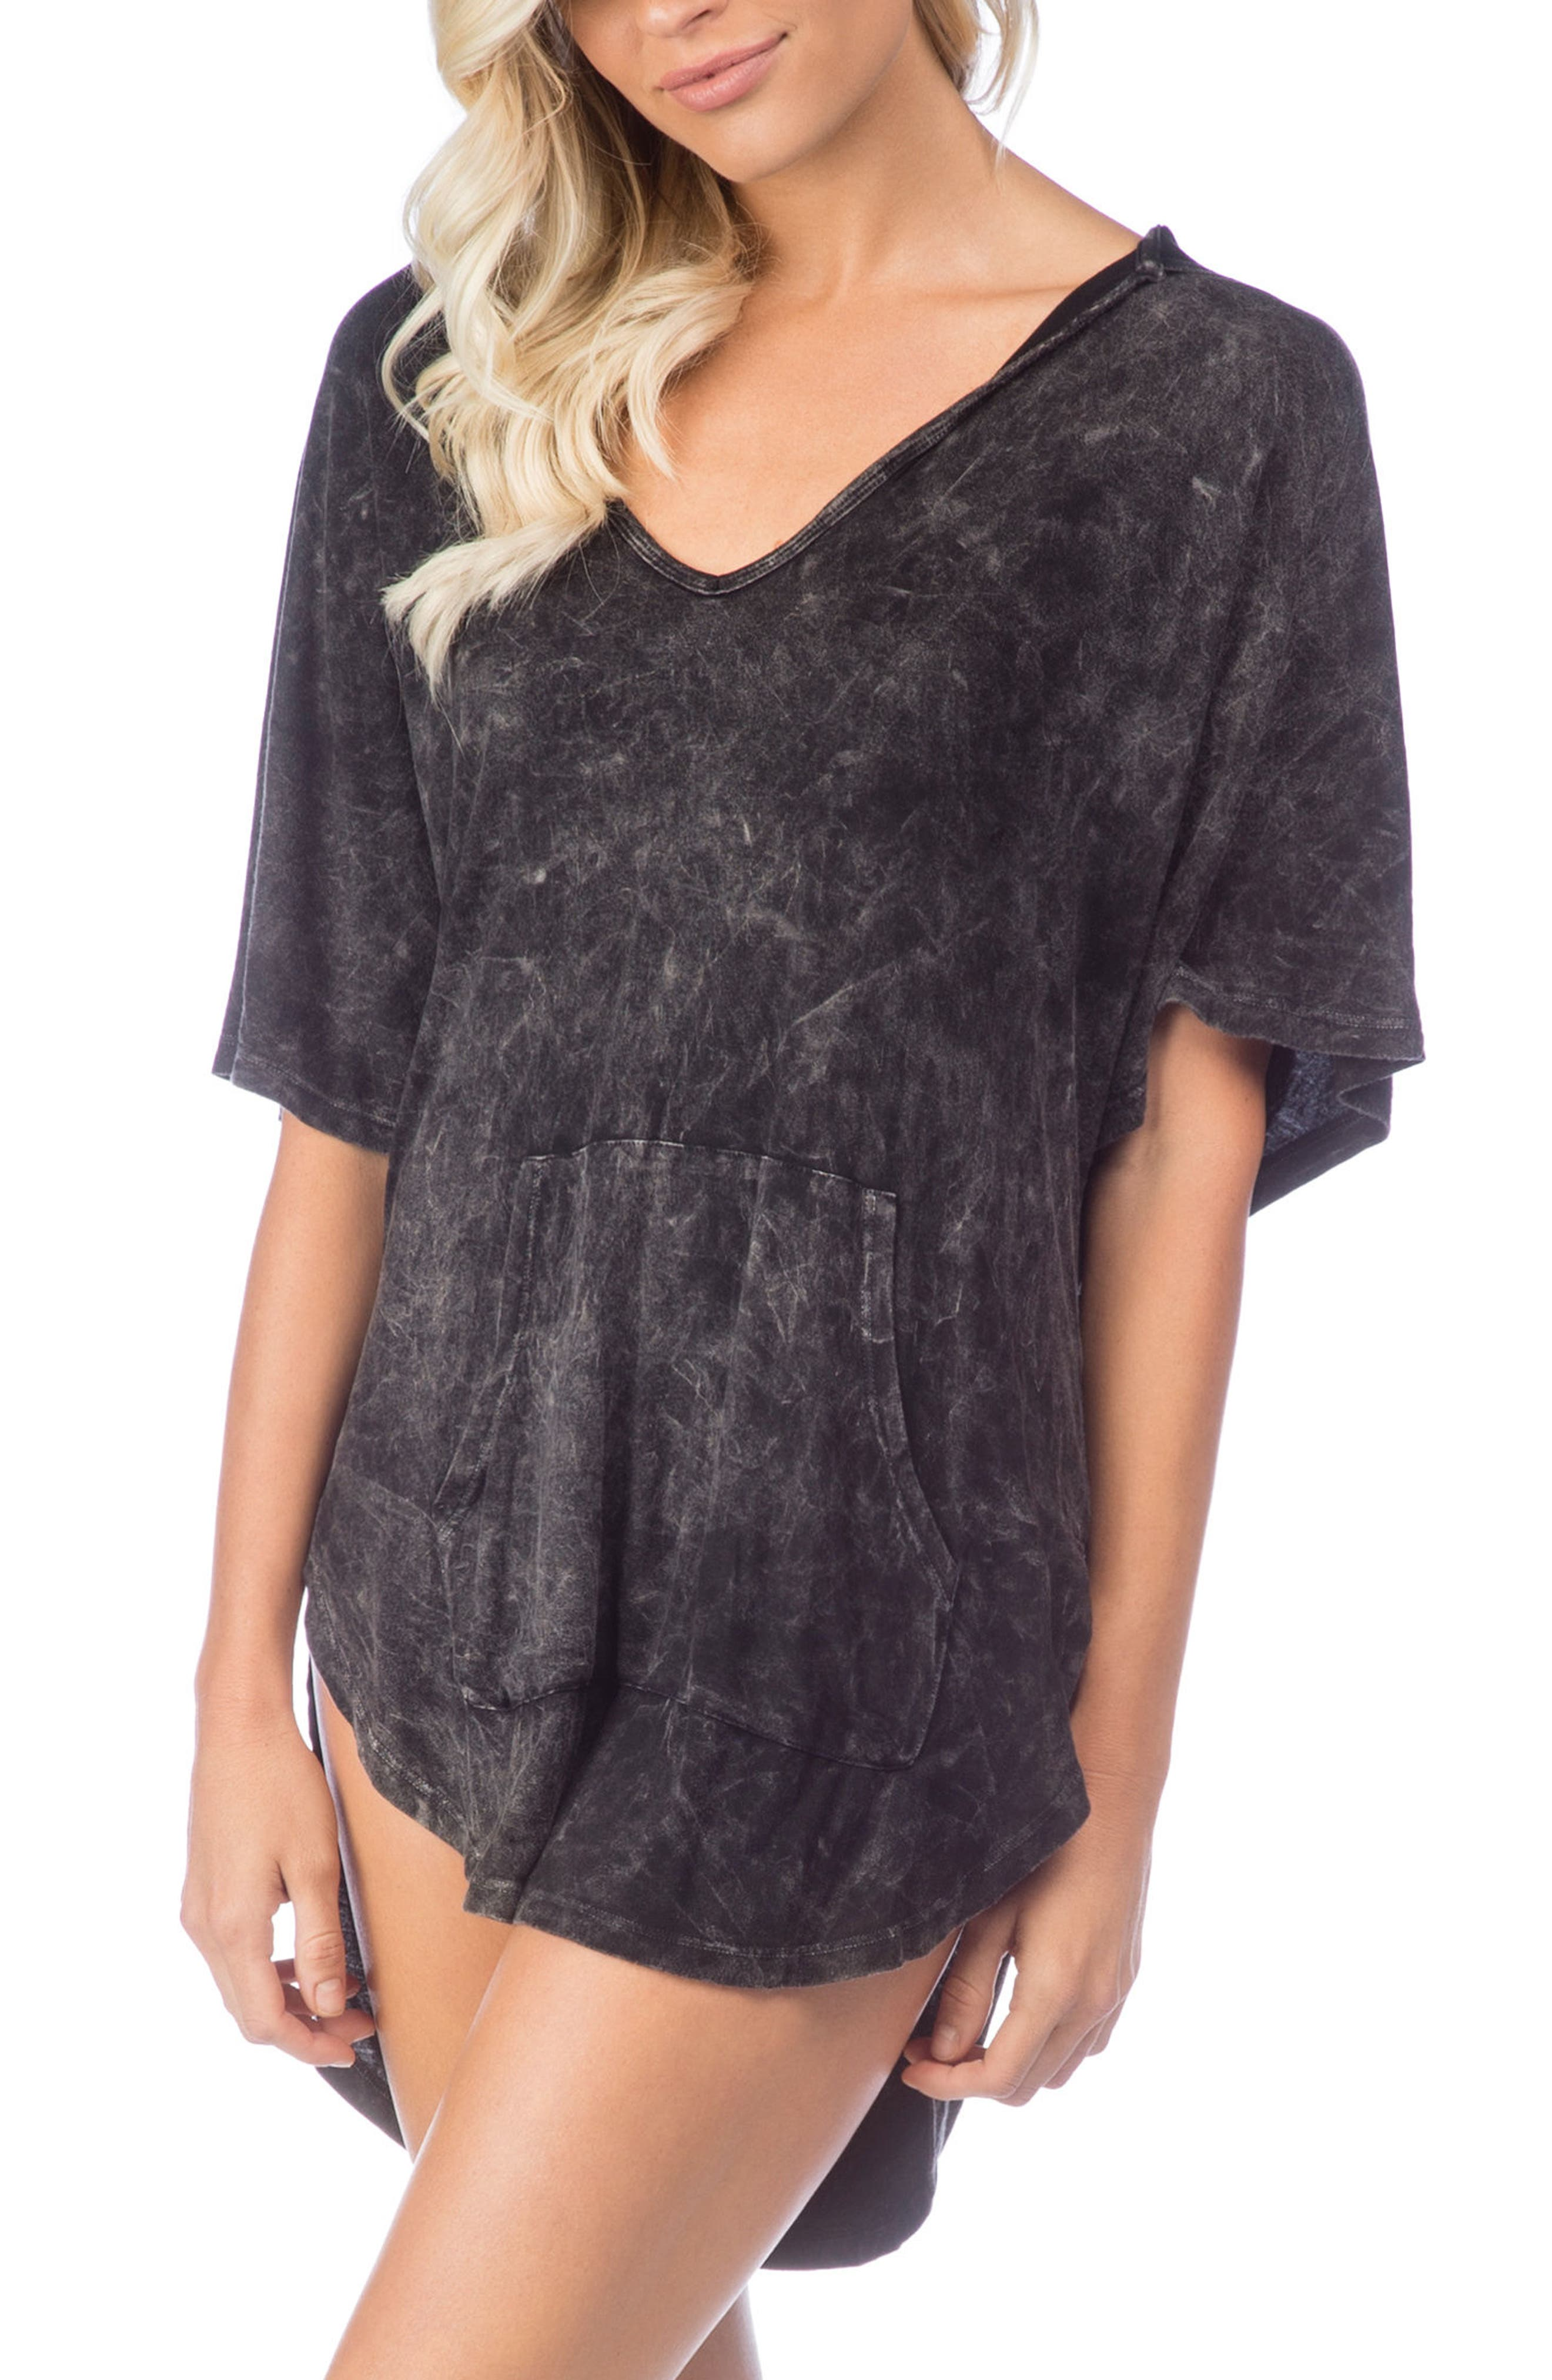 Riviera Hooded Cover-Up,                             Main thumbnail 1, color,                             001